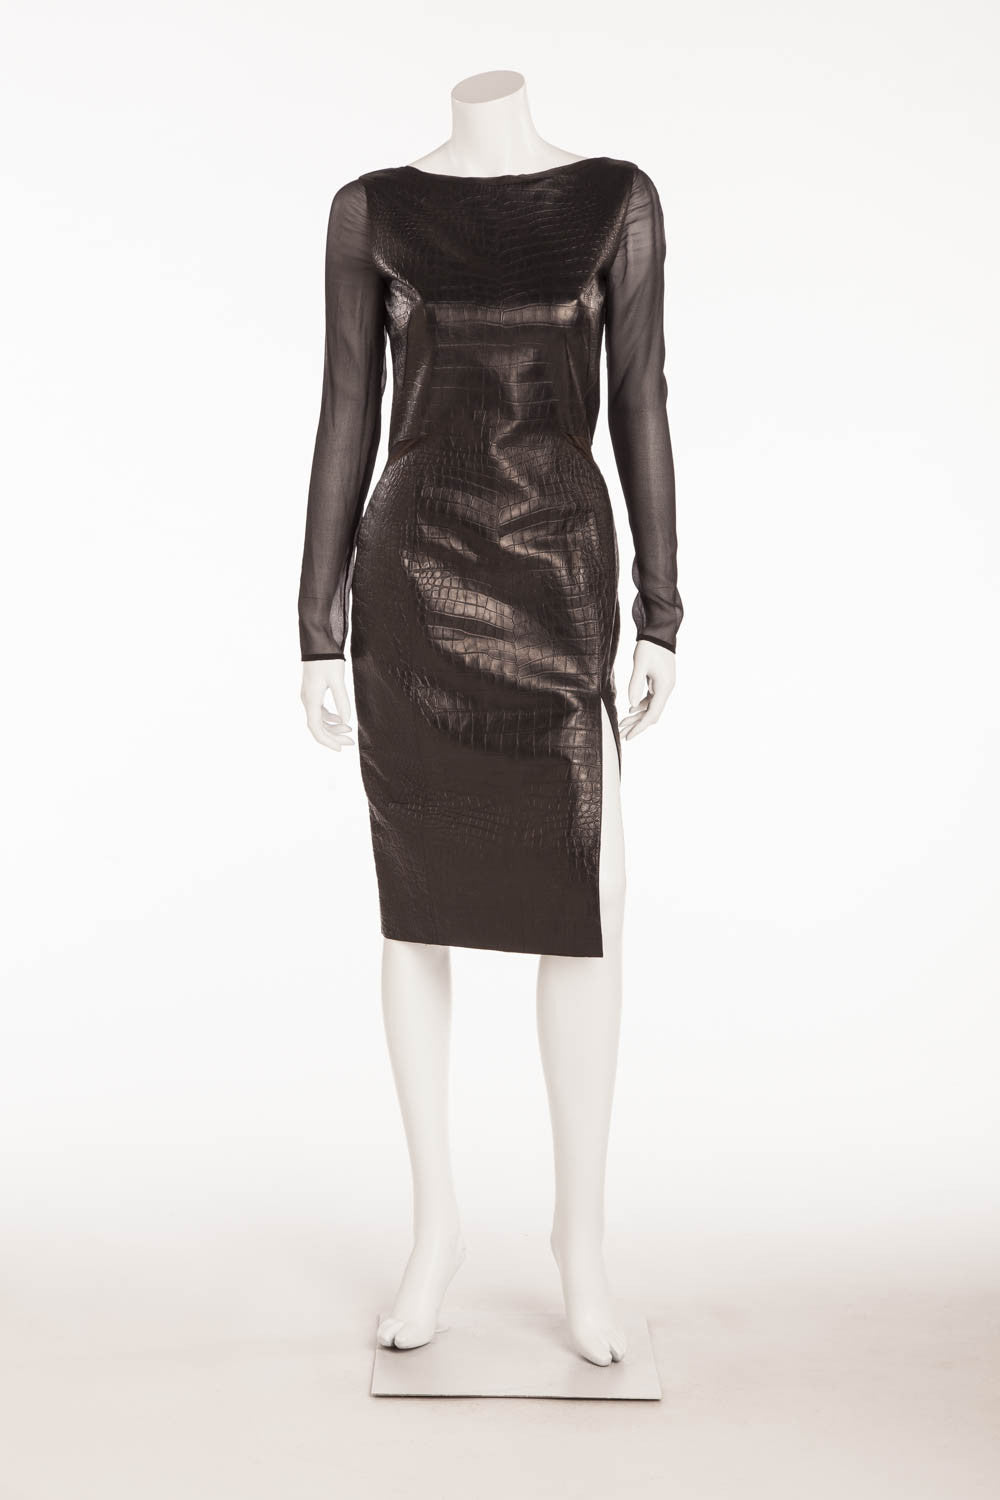 Emilio Pucci - Brand New with Tags Black Alligator Embossed Mini Dress Sheer Sleeves - IT 42